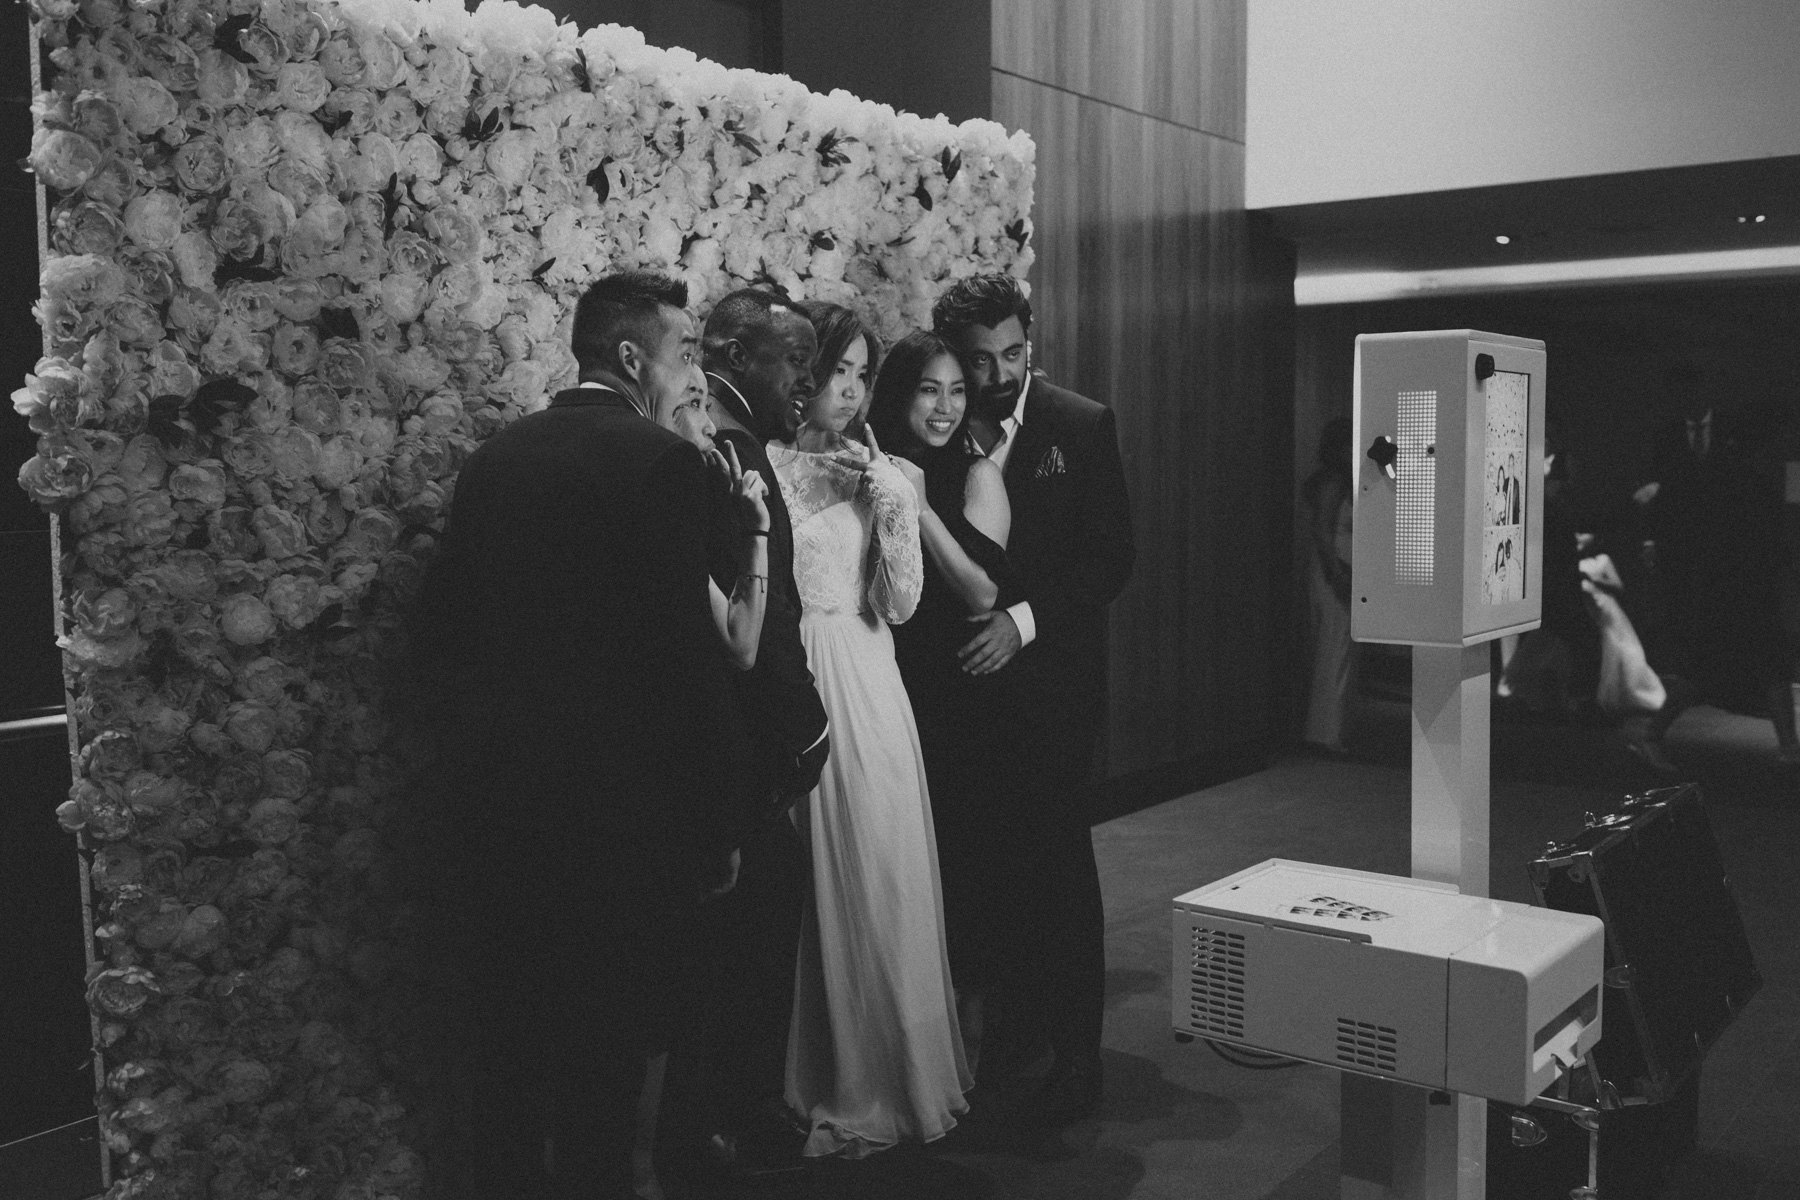 Malaparte-wedding-photography-Toronto-by-Sam-Wong-of-Artanis-Collective-Mary-Anne-Bourne_053.jpg